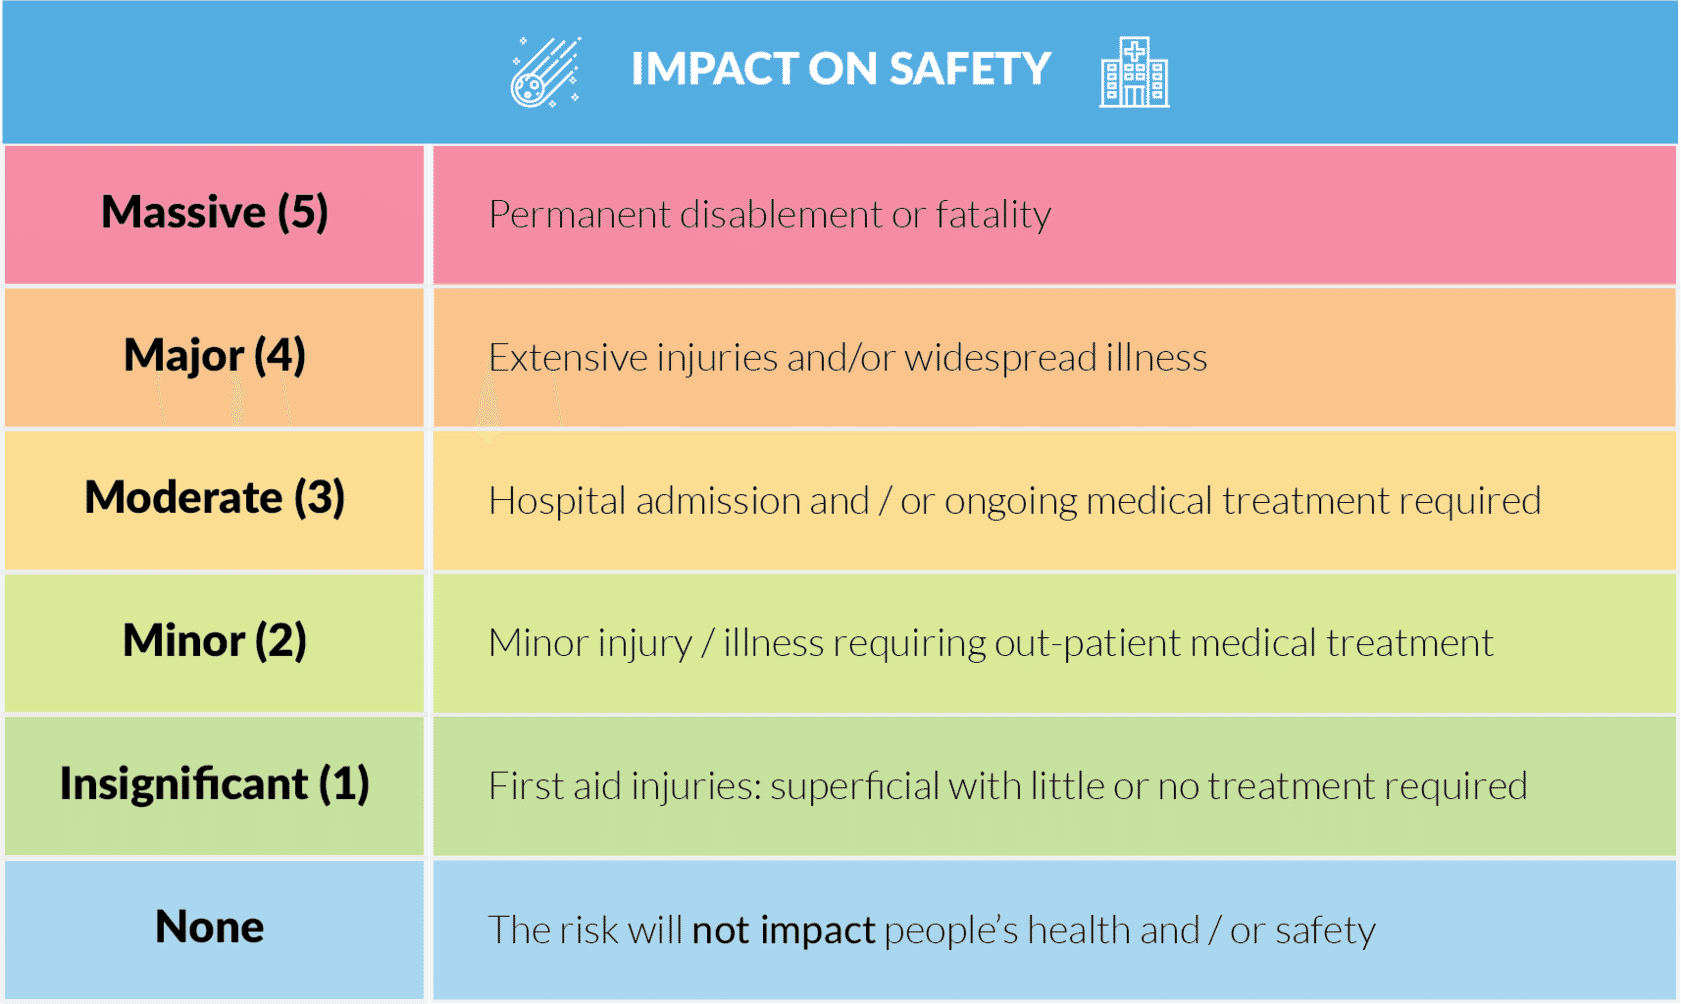 A table shows the impact on safety